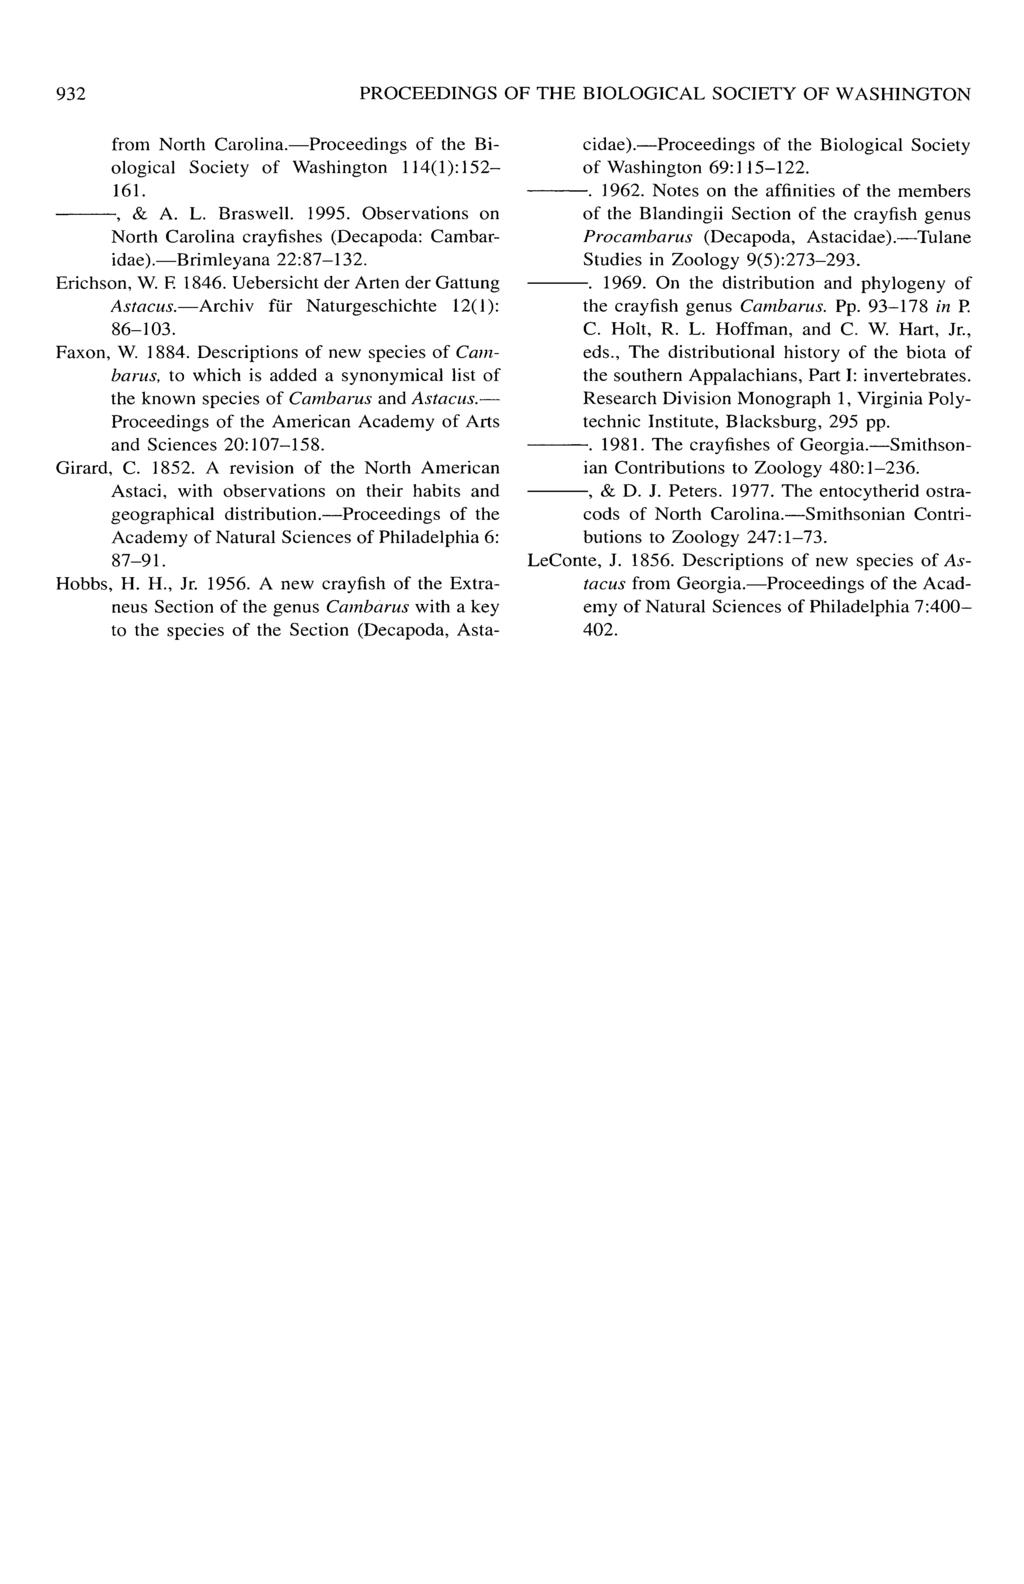 932 PROCEEDINGS OF THE BIOLOGICAL SOCIETY OF WASHINGTON from North Carolina. Proceedings of the Biological Society of Washington 114(1): 152 161., & A. L. Braswell. 1995.